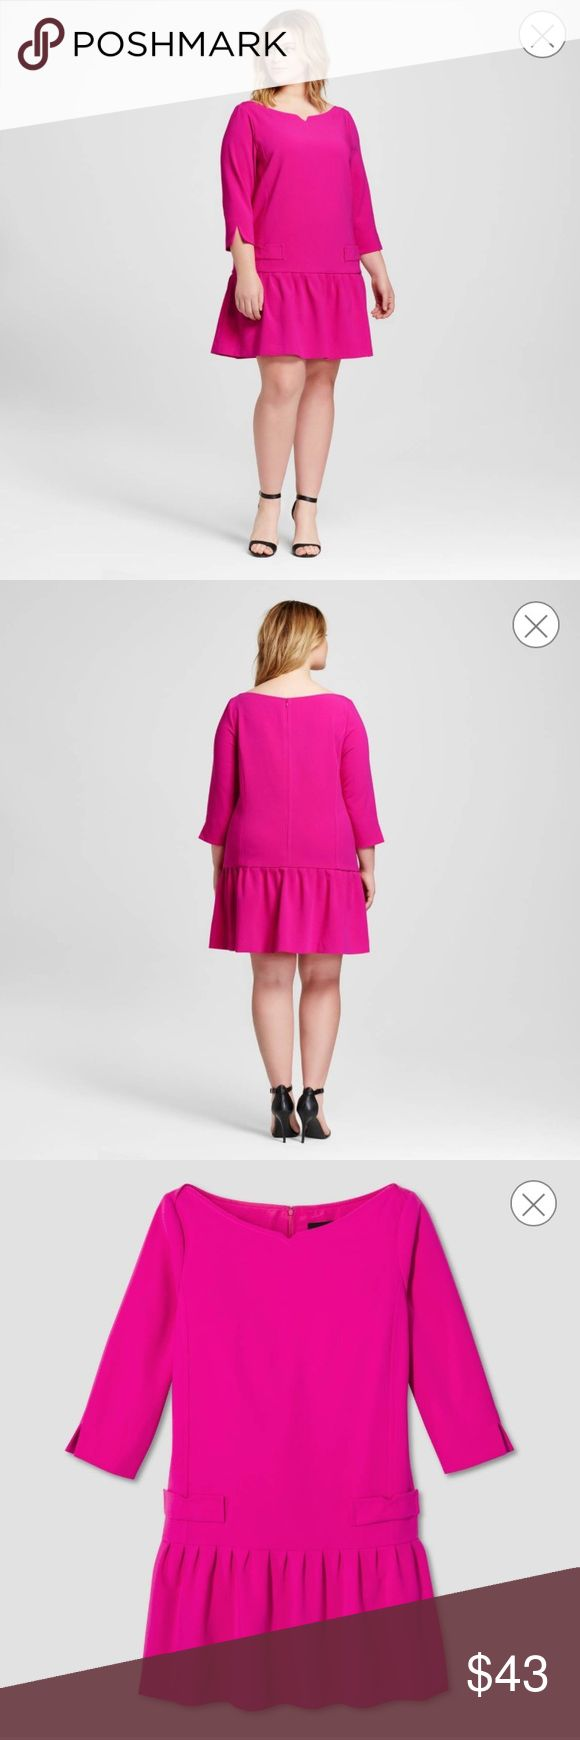 Victoria Beckham For Target Dress Women's plus fuchsia jacquard drop waist dress. 💕 Victoria Beckham for Target Dresses Mini